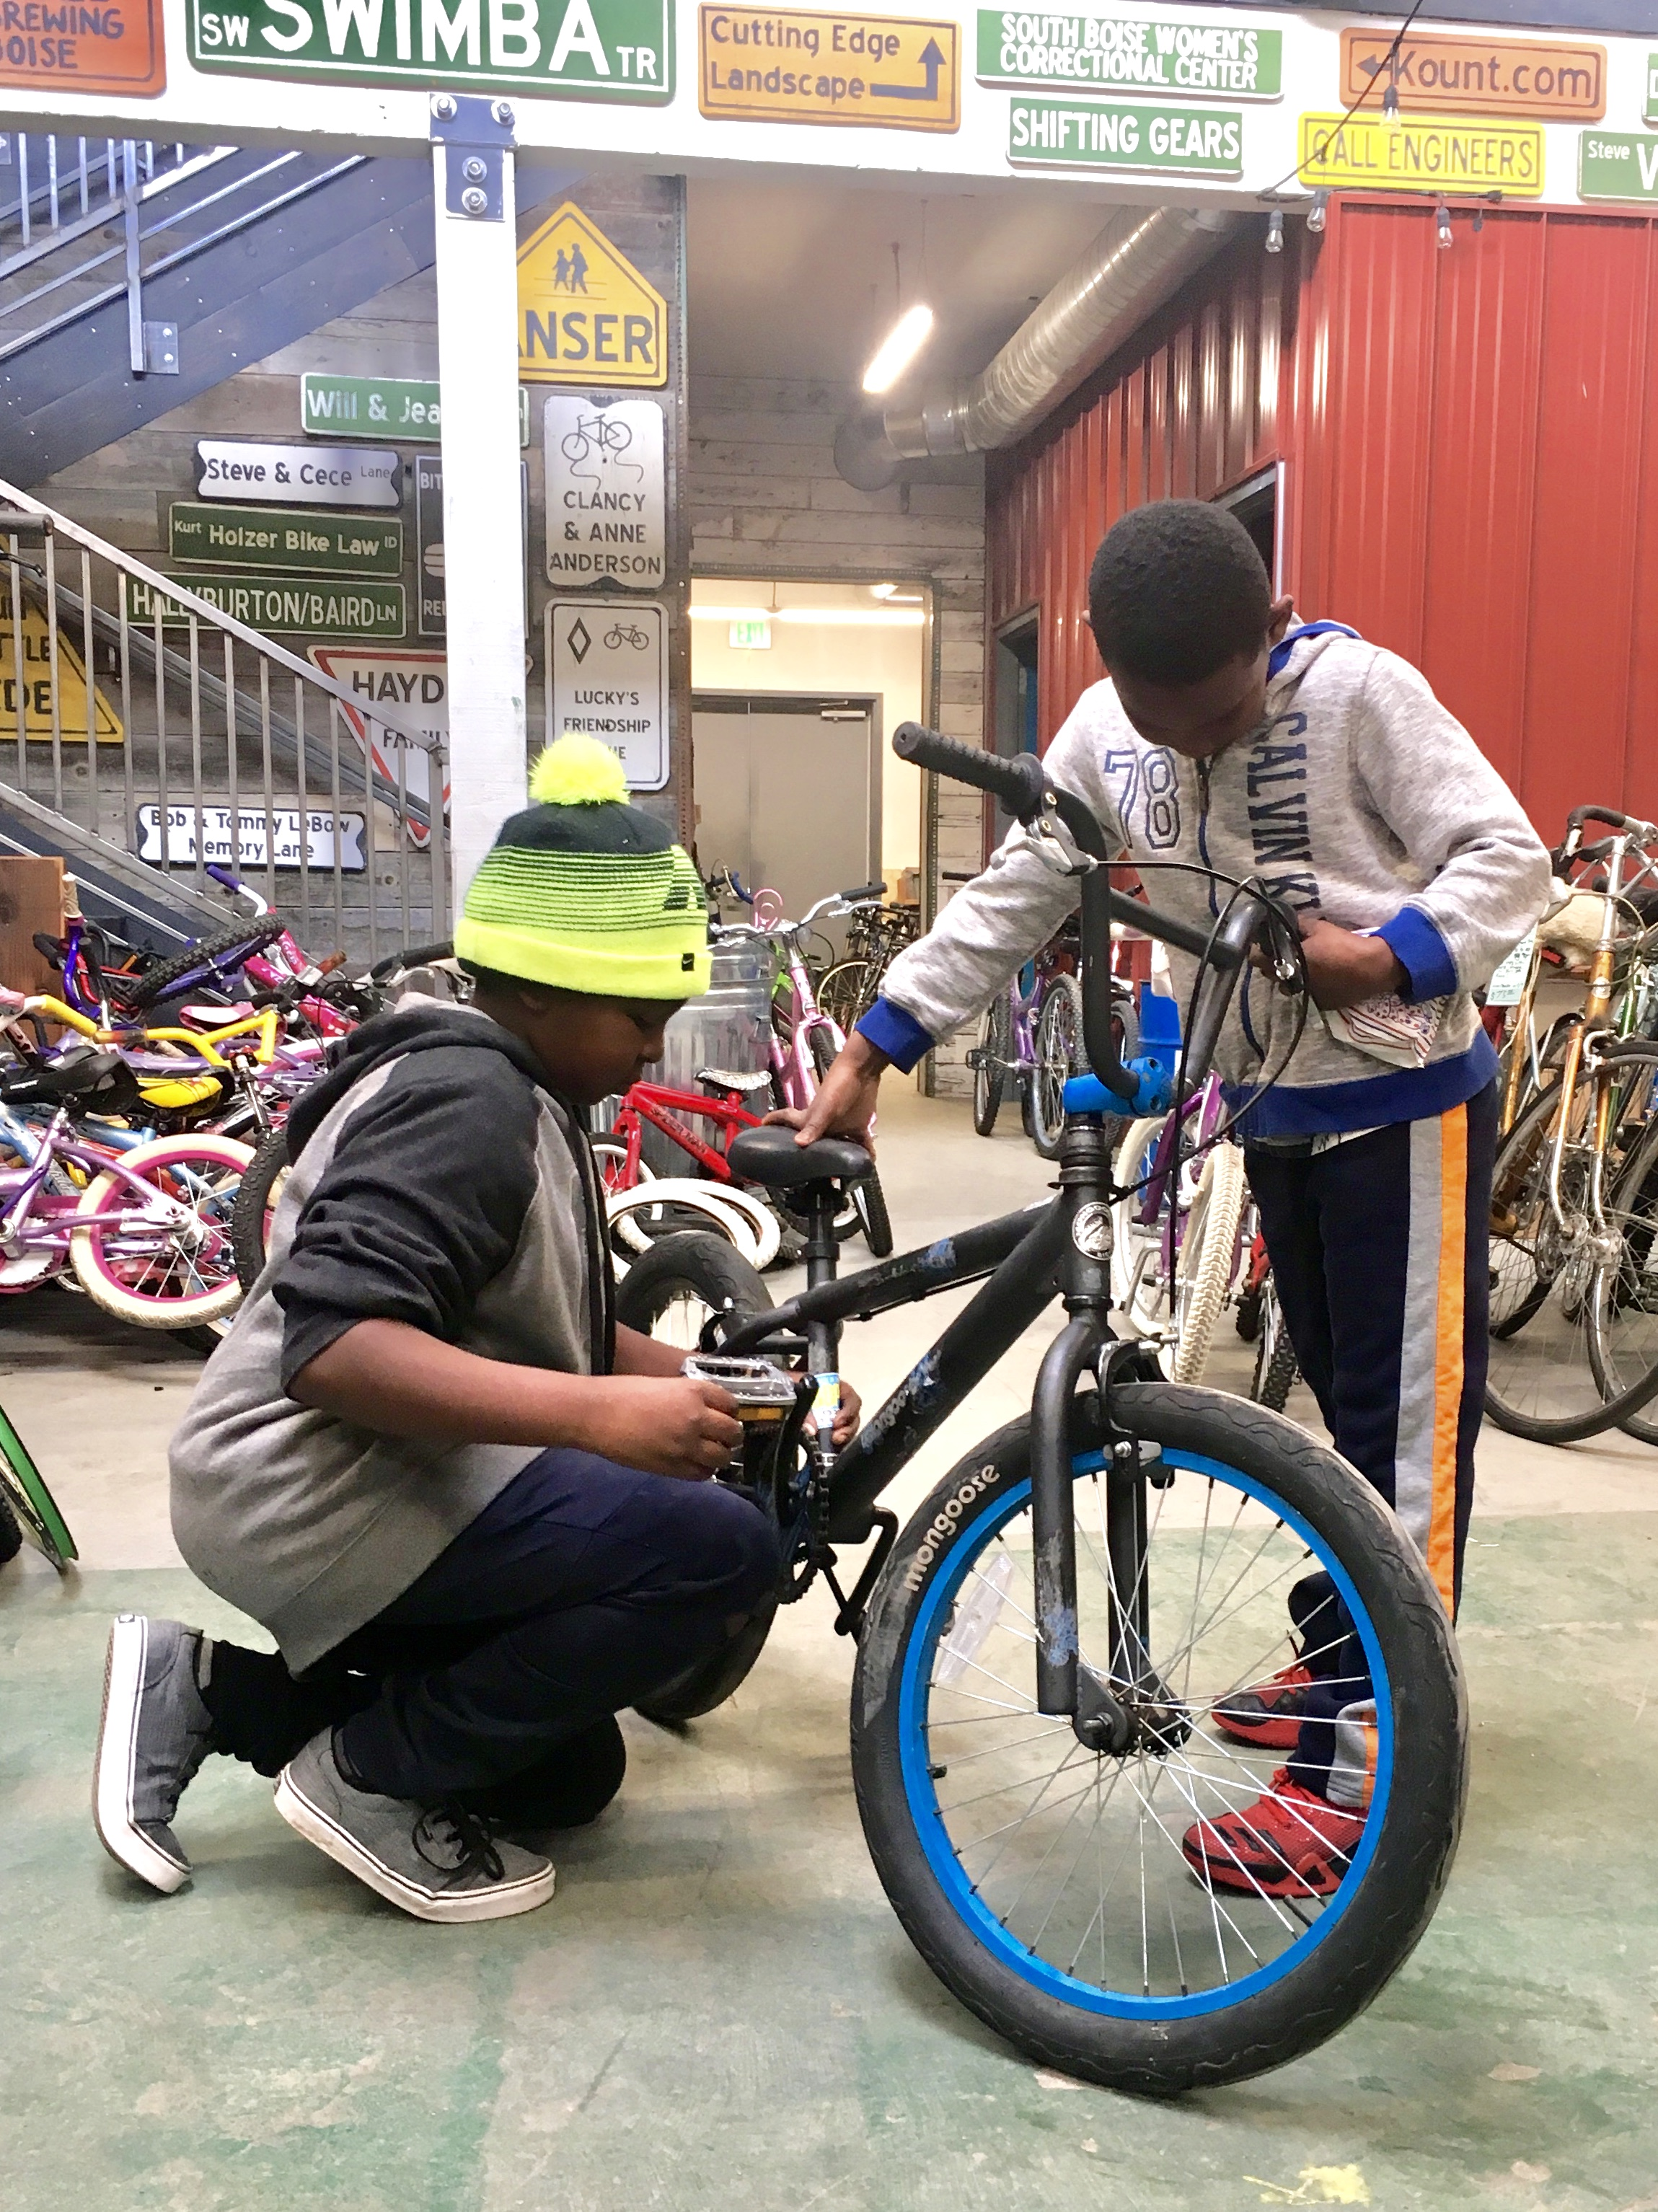 When you enter our doors, you have entered a place of community. Everyone is welcome to get their hands dirty, and all bikes belong.